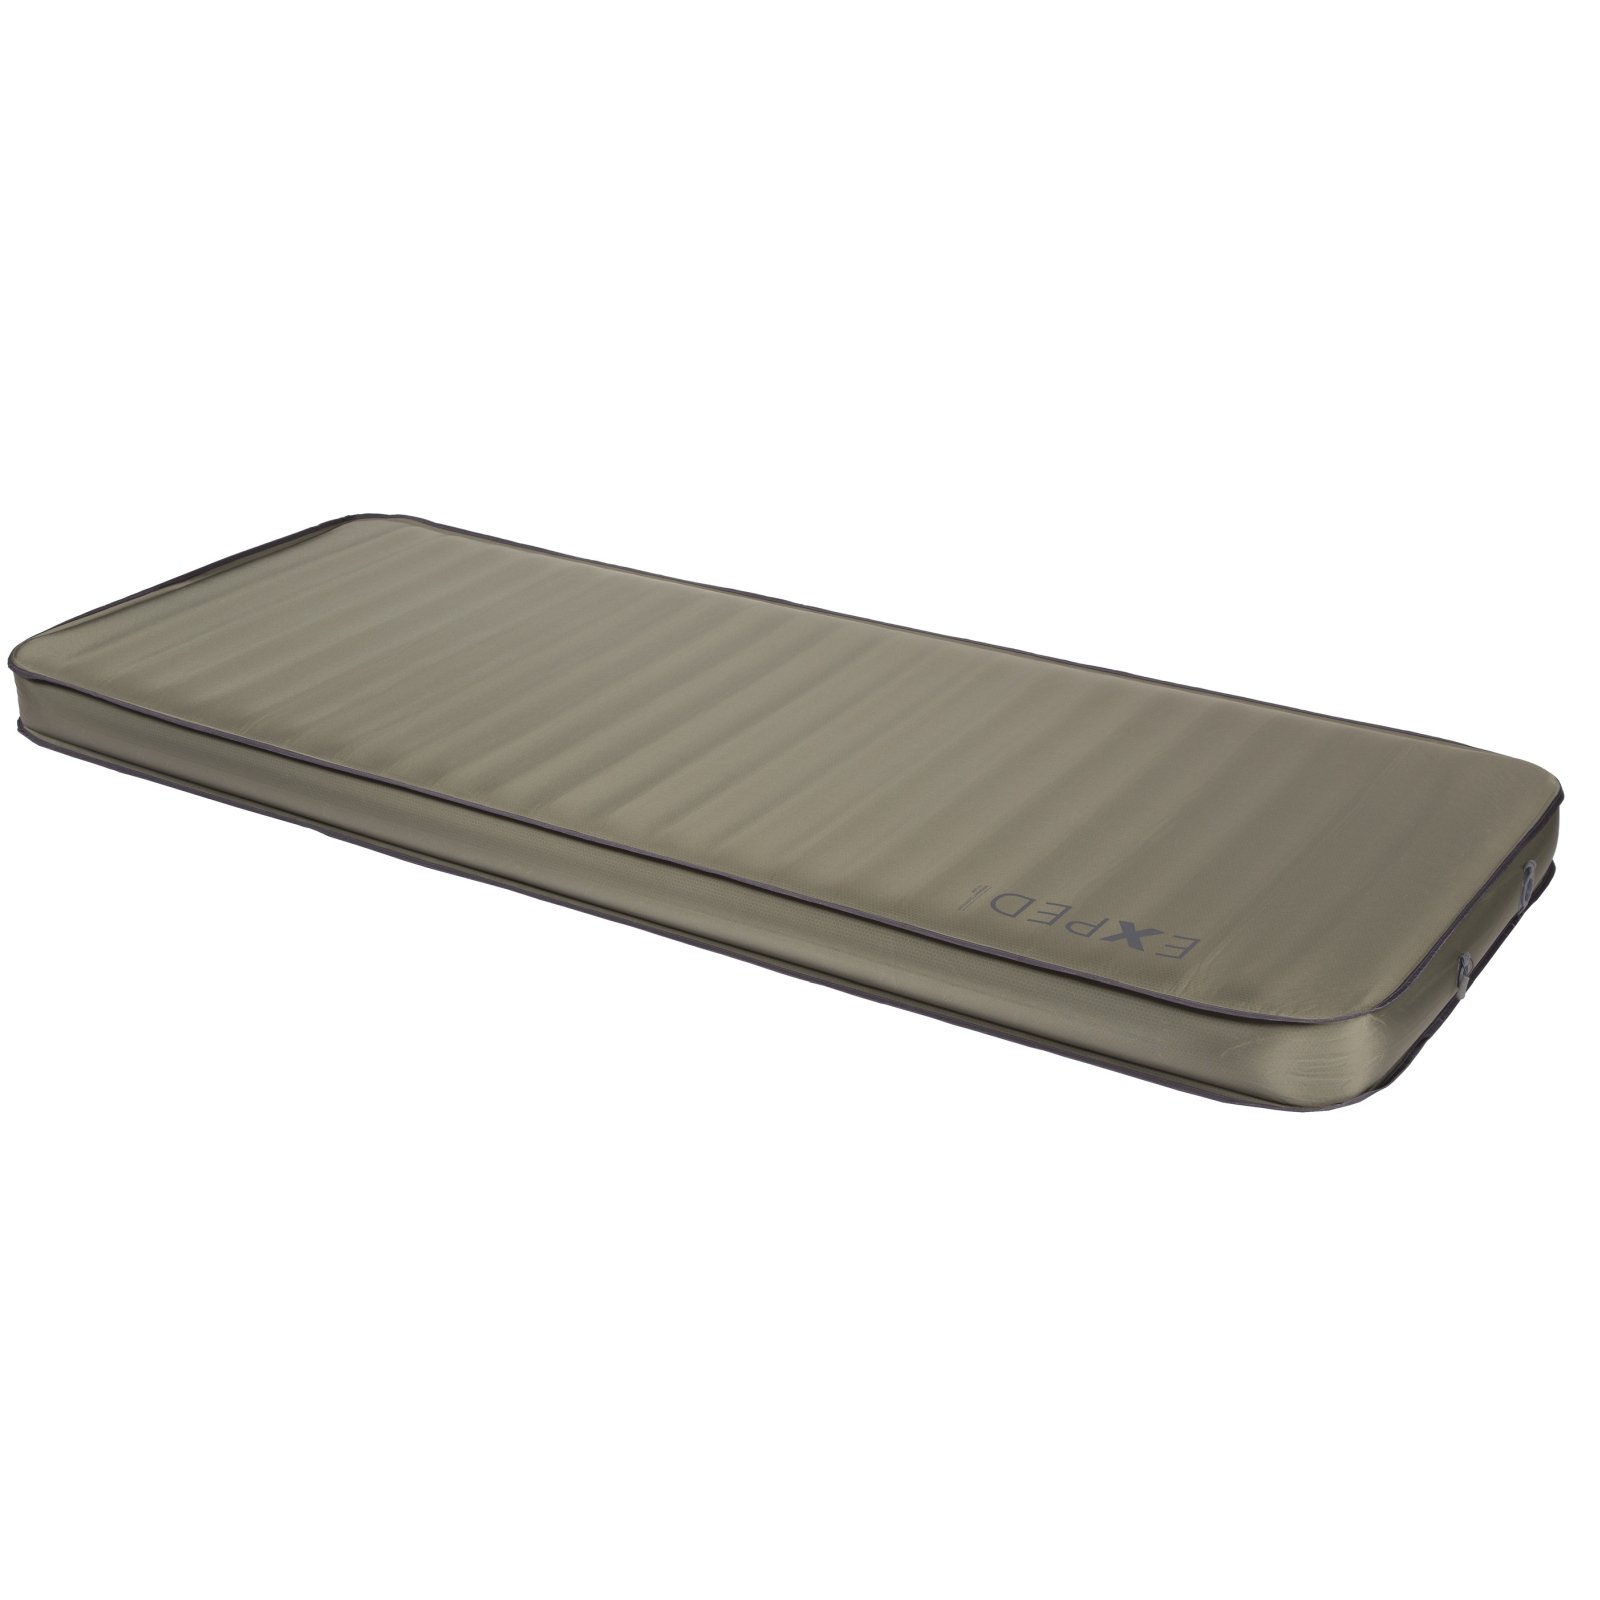 Exped MegaMat Outfitter Sleeping Pad - LXW - Green